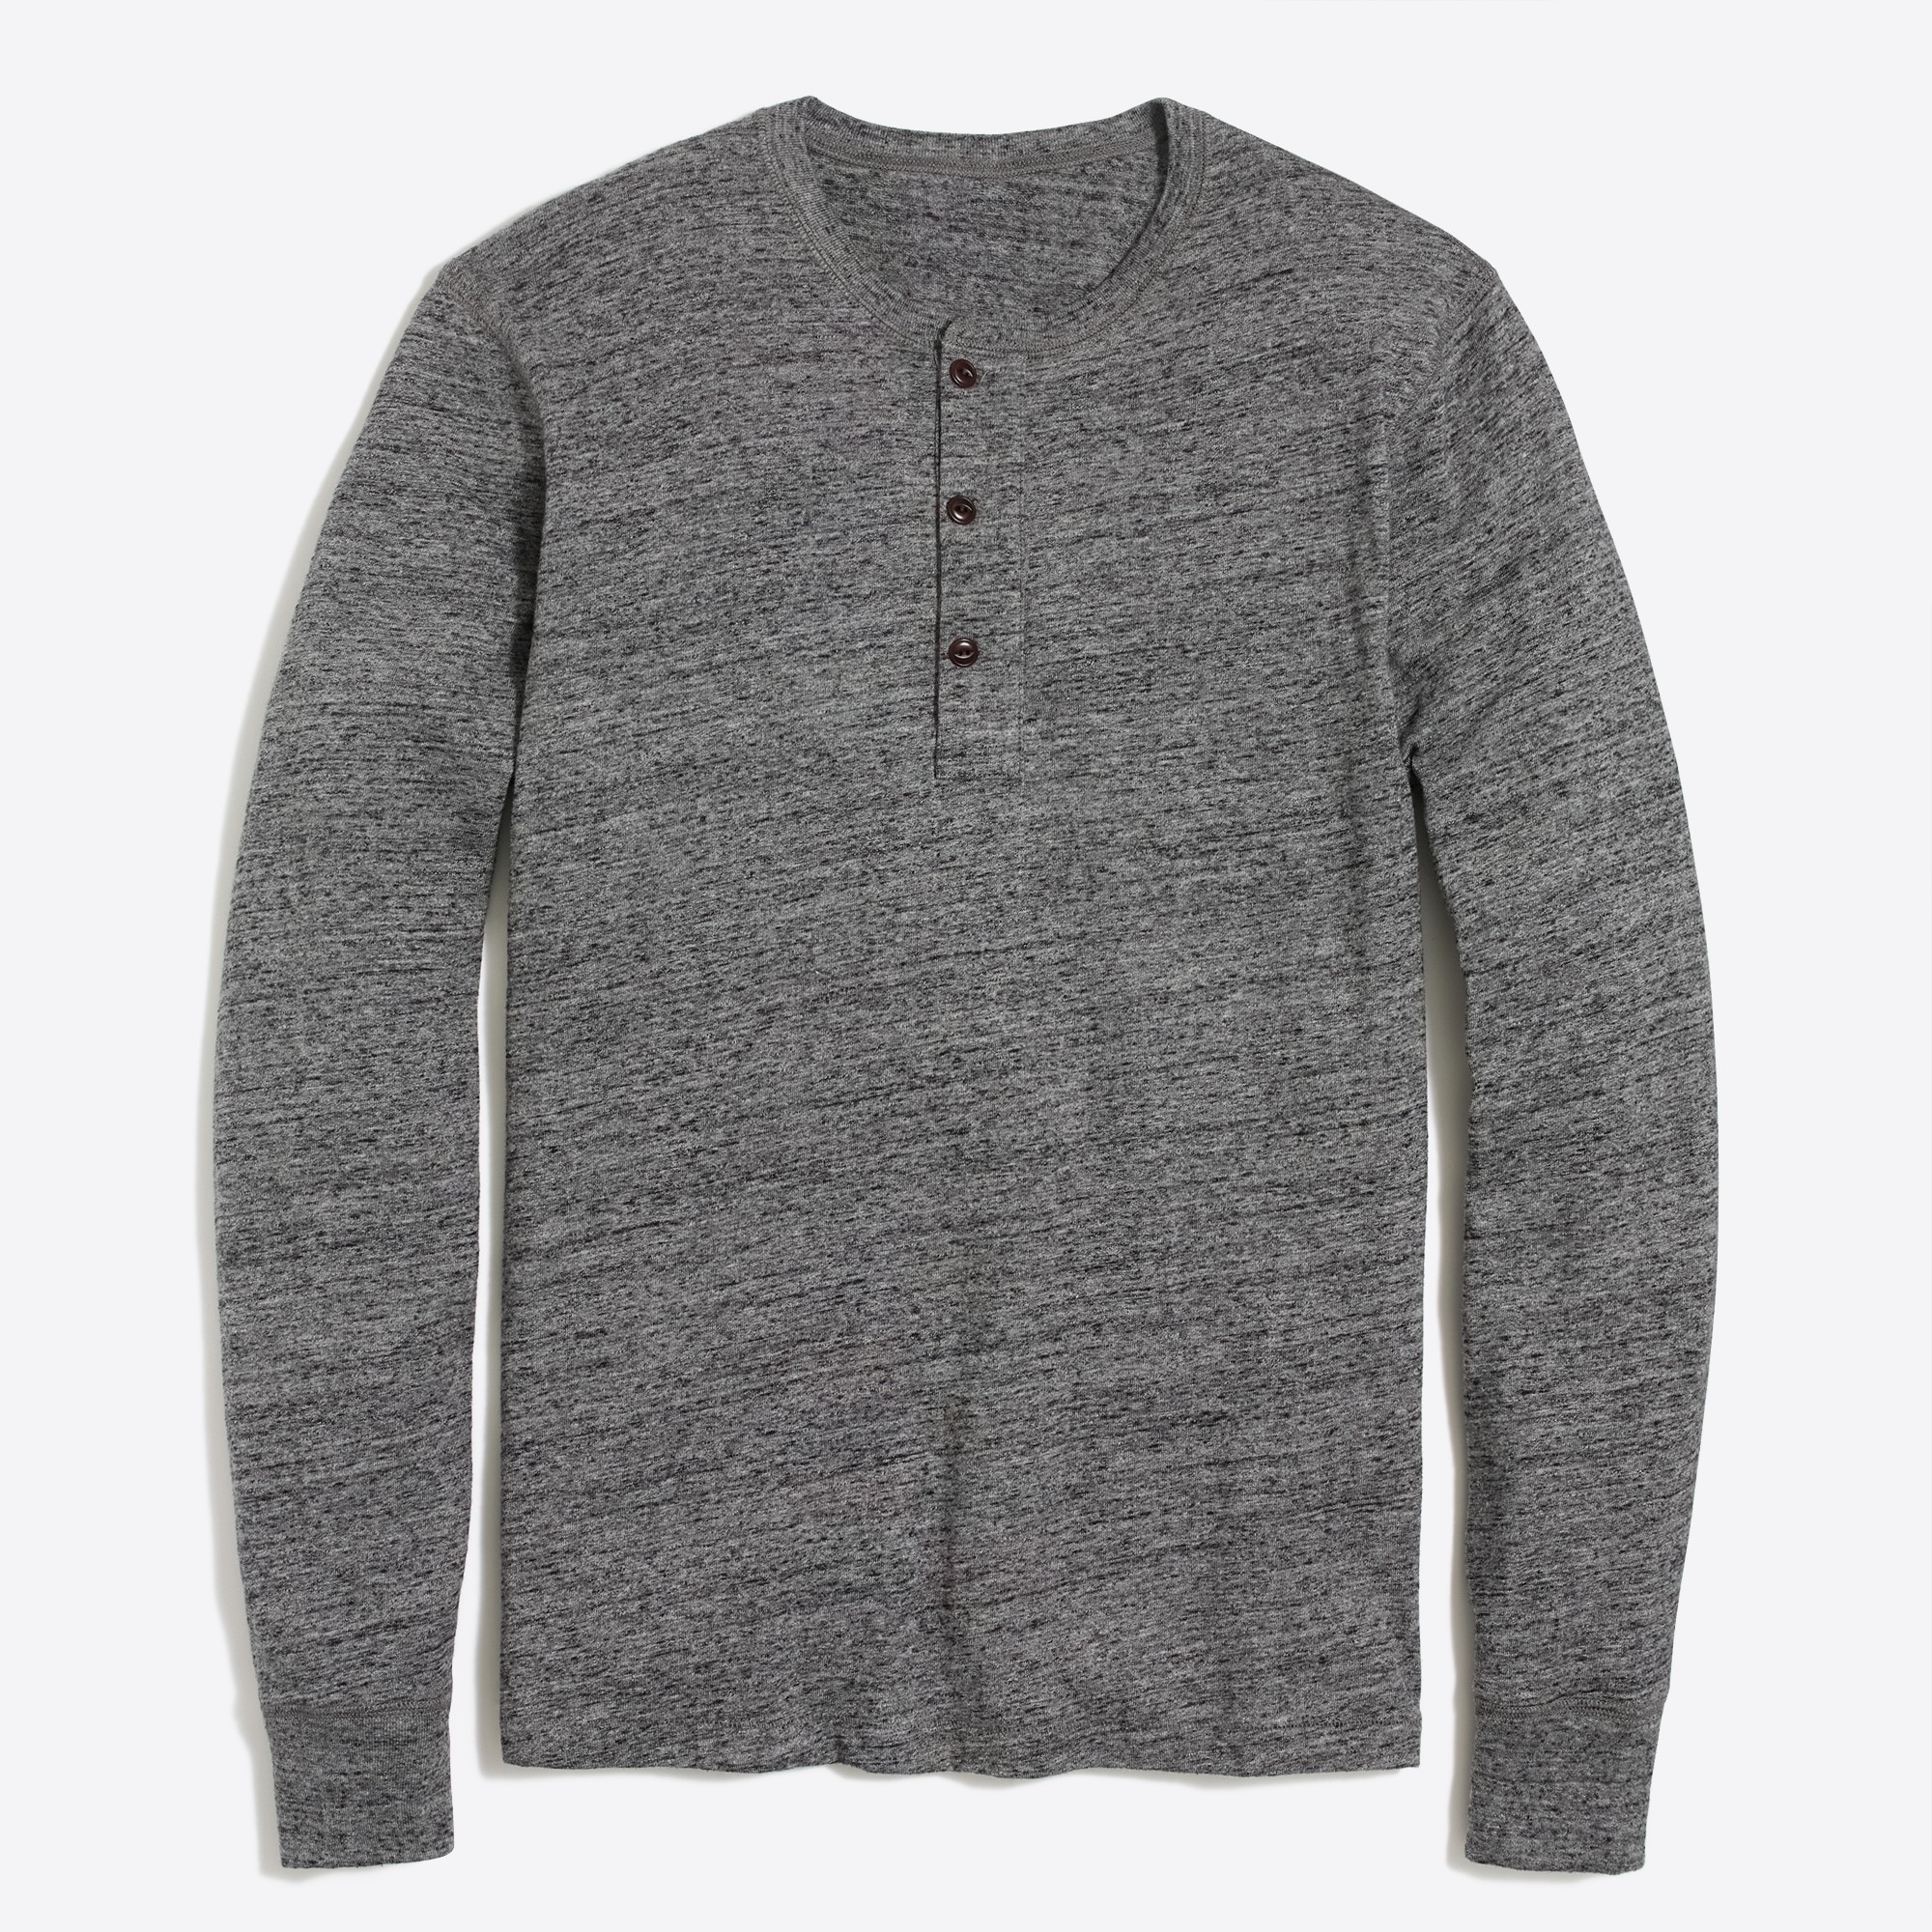 Long-sleeve slub cotton heather henley